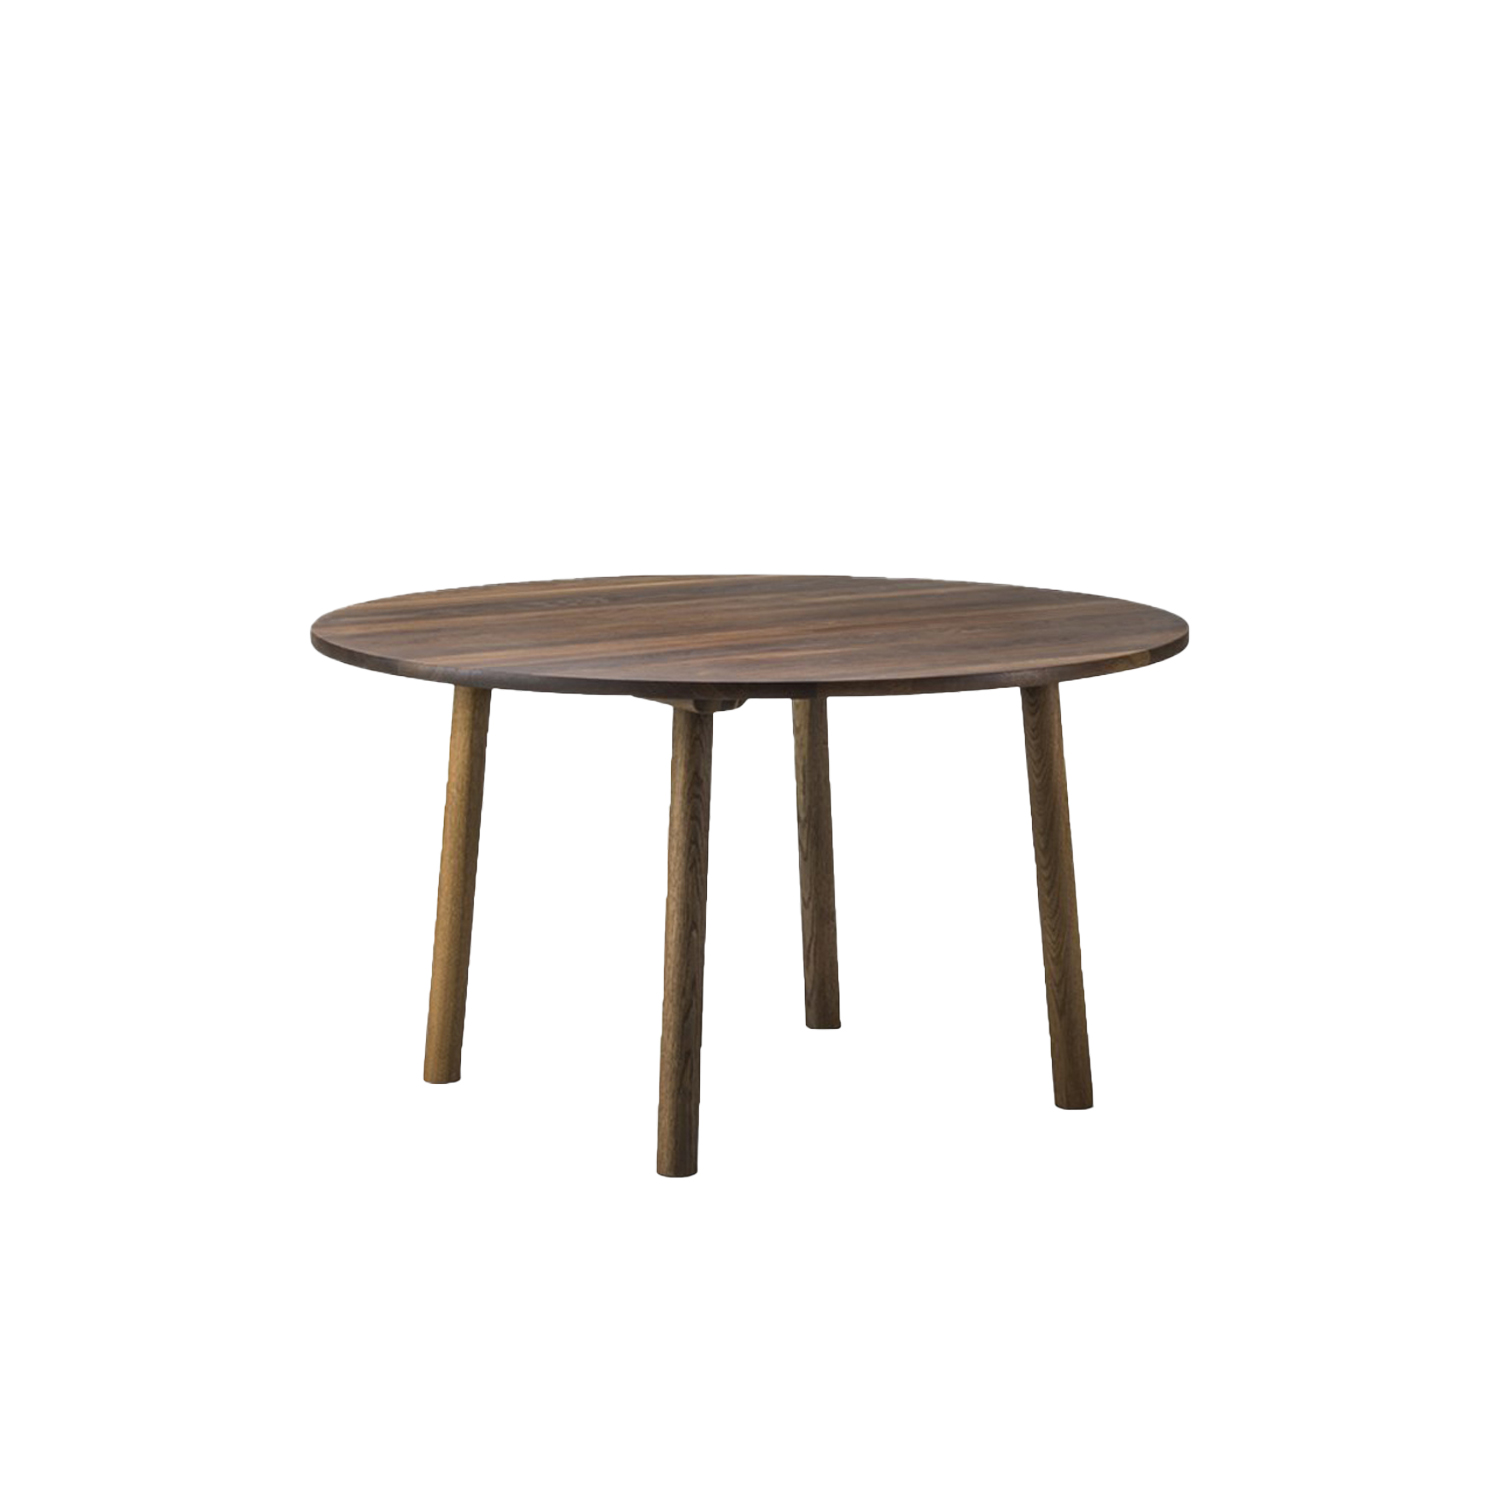 Taro 6121 Dining Table - Taro is a series of solid oak tables created with a strong focus on daily function and use, whether in the kitchen, dining area or meeting room. With machined grooves along its length, the table top resembles a traditional plank table, but has been executed in a refined and knotless selection of oak that will acquire the most beautiful patina.  Useful, understated, responsible design is an ongoing theme for Jasper Morrison. Seen in his focus on contemporary archetypes reduced to their functional essentials, as part of his definition of good design. Such is the case with our Taro Tables. Instead of starting with the purpose of a wood table, the starting point was finding a purpose for the wood itself.   Inspiration came from the premium grade quarter sawn oak at our Fredericia factory, used for many of our most compelling furniture designs, such as The Spanish Chair. The timber comes from trees aged upwards of 150 years, so maximising the most appealing planks while minimising wastage was a high priority.   The Taro Tables exude the natural appeal of oak, which will patinate beautifully over time, in a simple design that's unassuming yet appealing. Whether round or rectangular, for residential dining or corporate meetings, Taro commands attention with its solidity and stunning natural patterns of the wood grain.  | Matter of Stuff